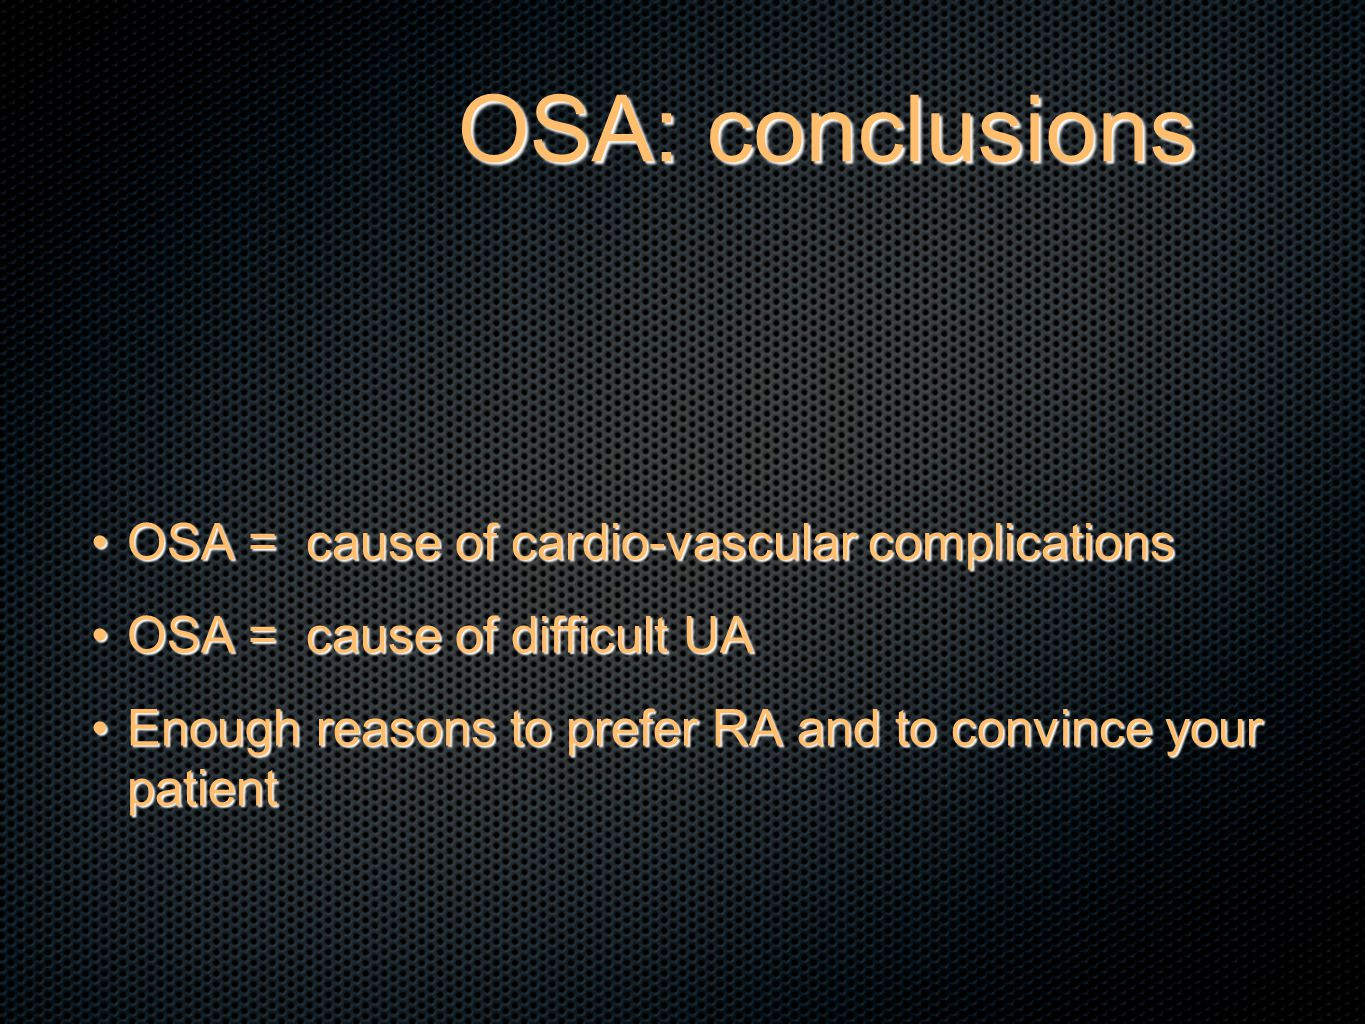 OSA: conclusions OSA = cause of cardio-vascular complicationsOSA = cause of cardio-vascular complications OSA = cause of difficult UAOSA = cause of difficult UA Enough reasons to prefer RA and to convince your patientEnough reasons to prefer RA and to convince your patient